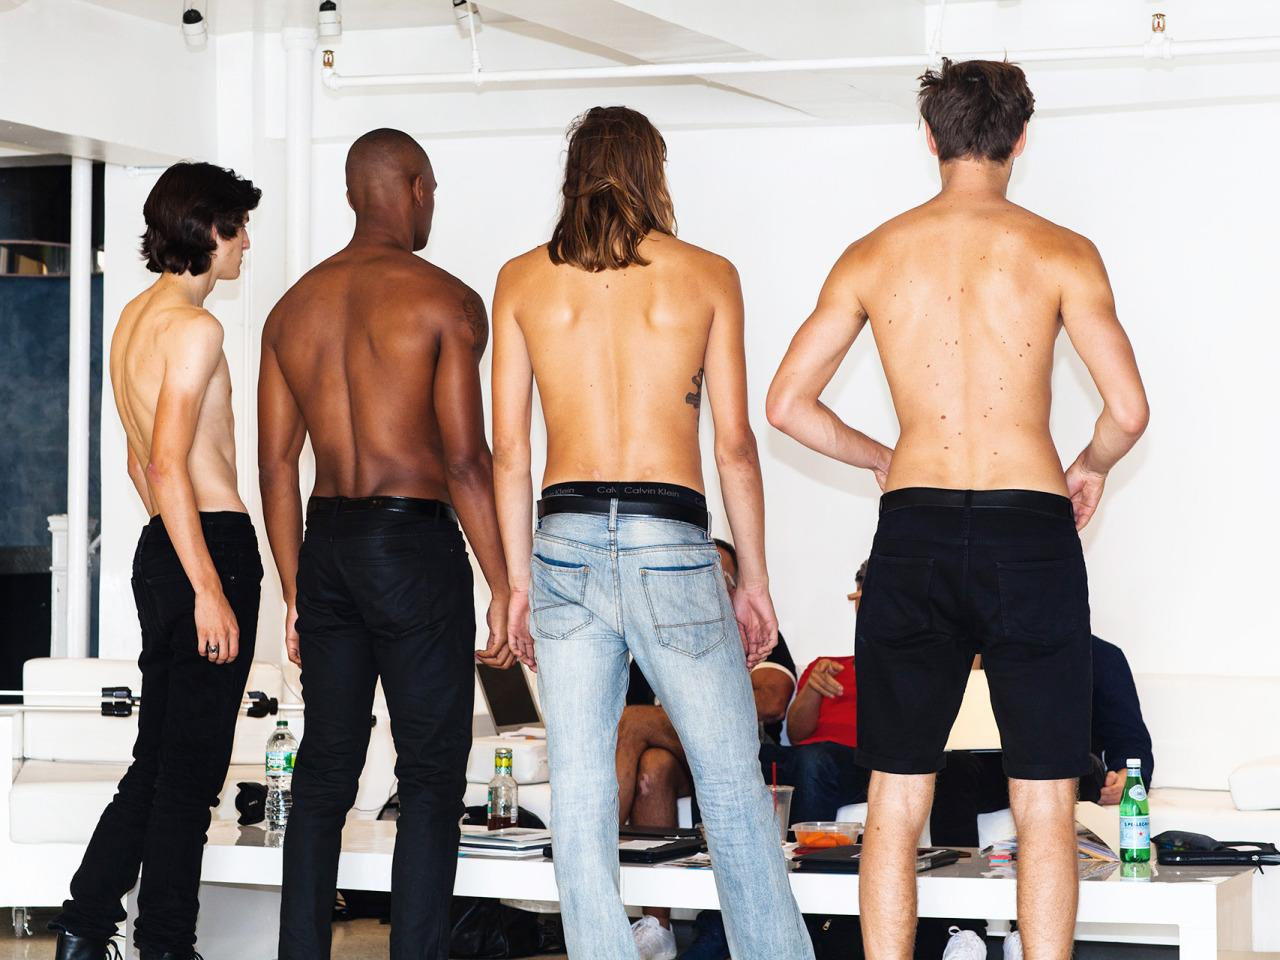 """<p>In groups of four, the models introduce themselves to the designers and casting director. EitherRonen Jehezkel or Parke Lutter will ask preliminary questions: """"Where are you from?"""" What's your ethnicity?"""" """"Do you go to the gym?""""(Photo: <a href=""""http://zakkrevitt.format.com/"""">Zak Krevitt</a> and <a href=""""http://www.thomasrichardmccarty.com/2016"""">Thomas McCarty</a> for Yahoo Style)</p>"""